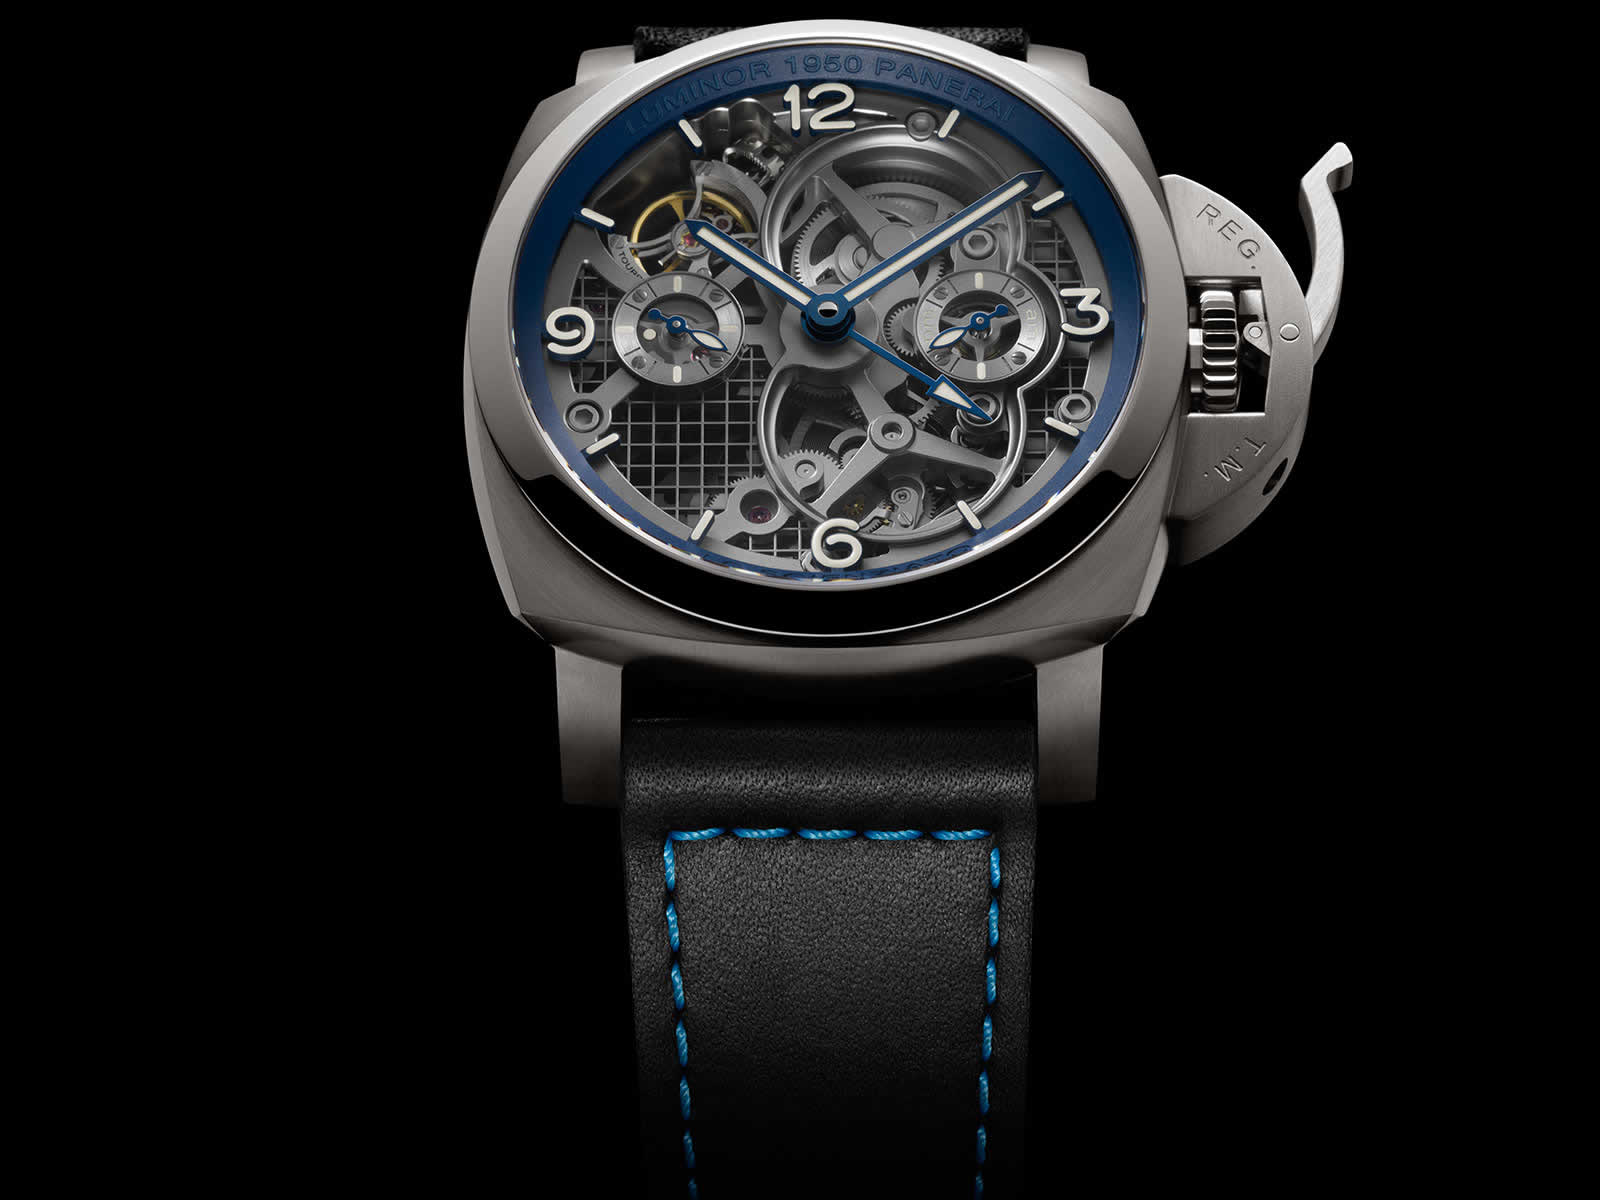 Panerai-Lo-Scienziato-Luminor-1950-Tourbillon-Gmt-Pam00767-2.jpg